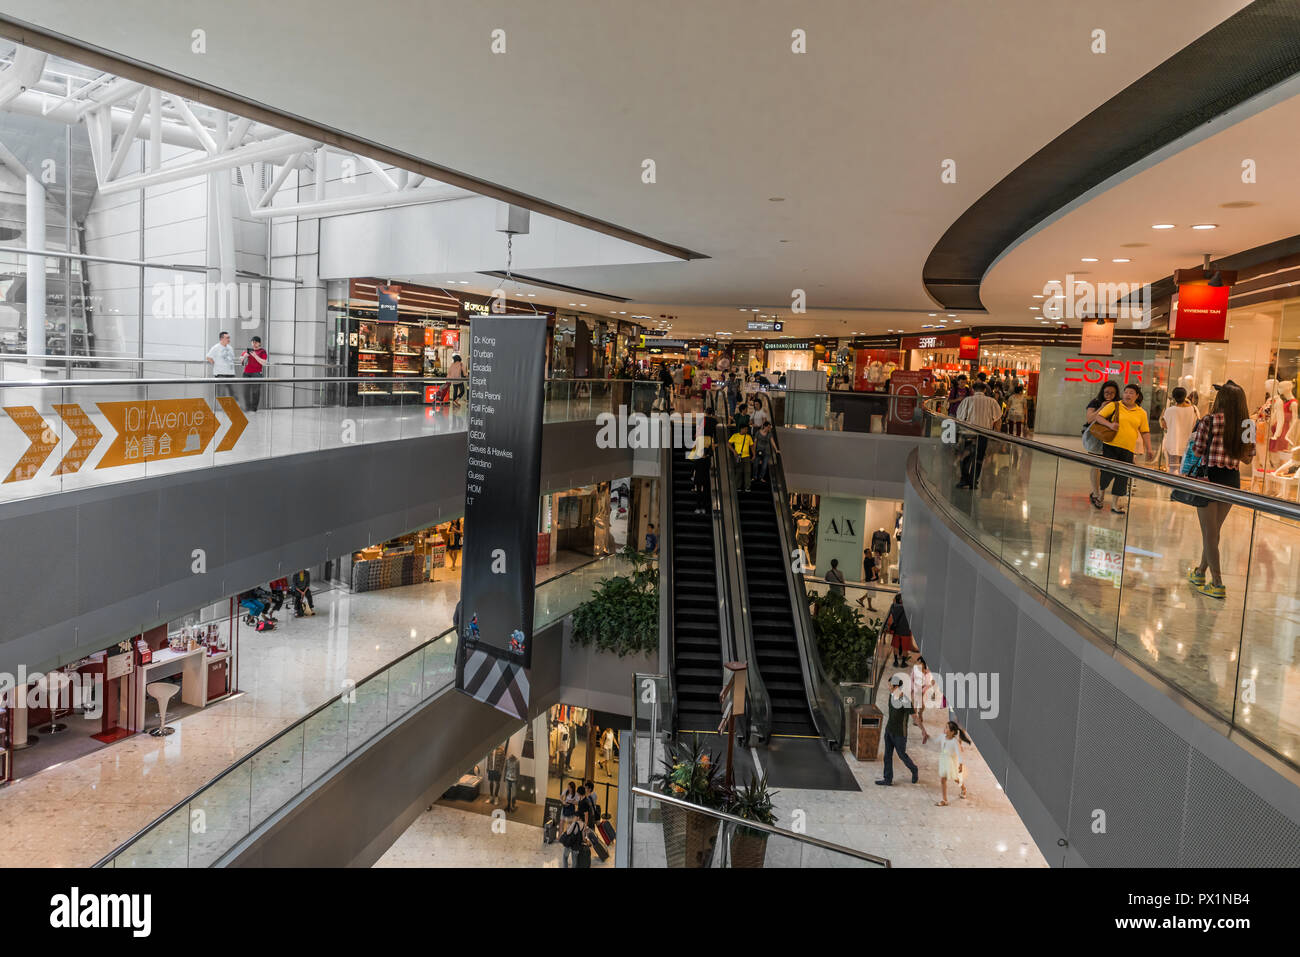 Tung Chung Wan, Hong Kong, China- June 11, 2014: people shopping at the CityGate Outlet shopping mall in Lantau island near the airport - Stock Image